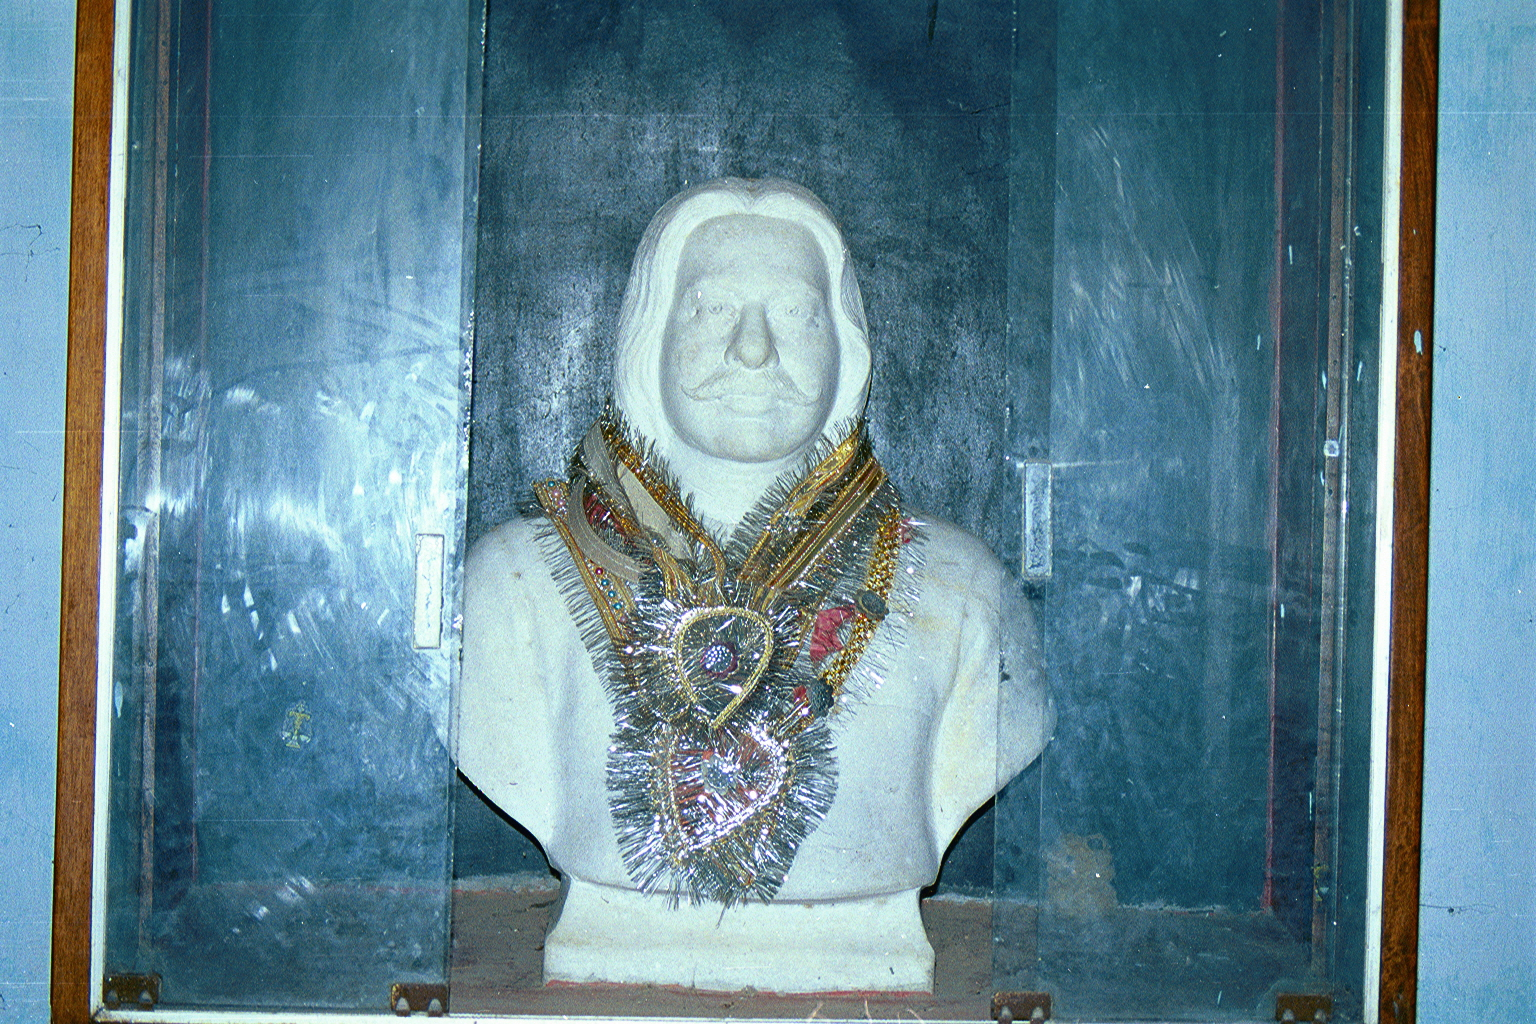 CLICK TO ENLARGE - A marble bust (statue) of my Late Great Grandfather Mr J. P. Chaturvedi, at the 'Mallehpur' railway station. The entire station, including the railway yard was built on our property in the 1920's at 'Mallehpur', Monghyr(District), BIHAR, North India